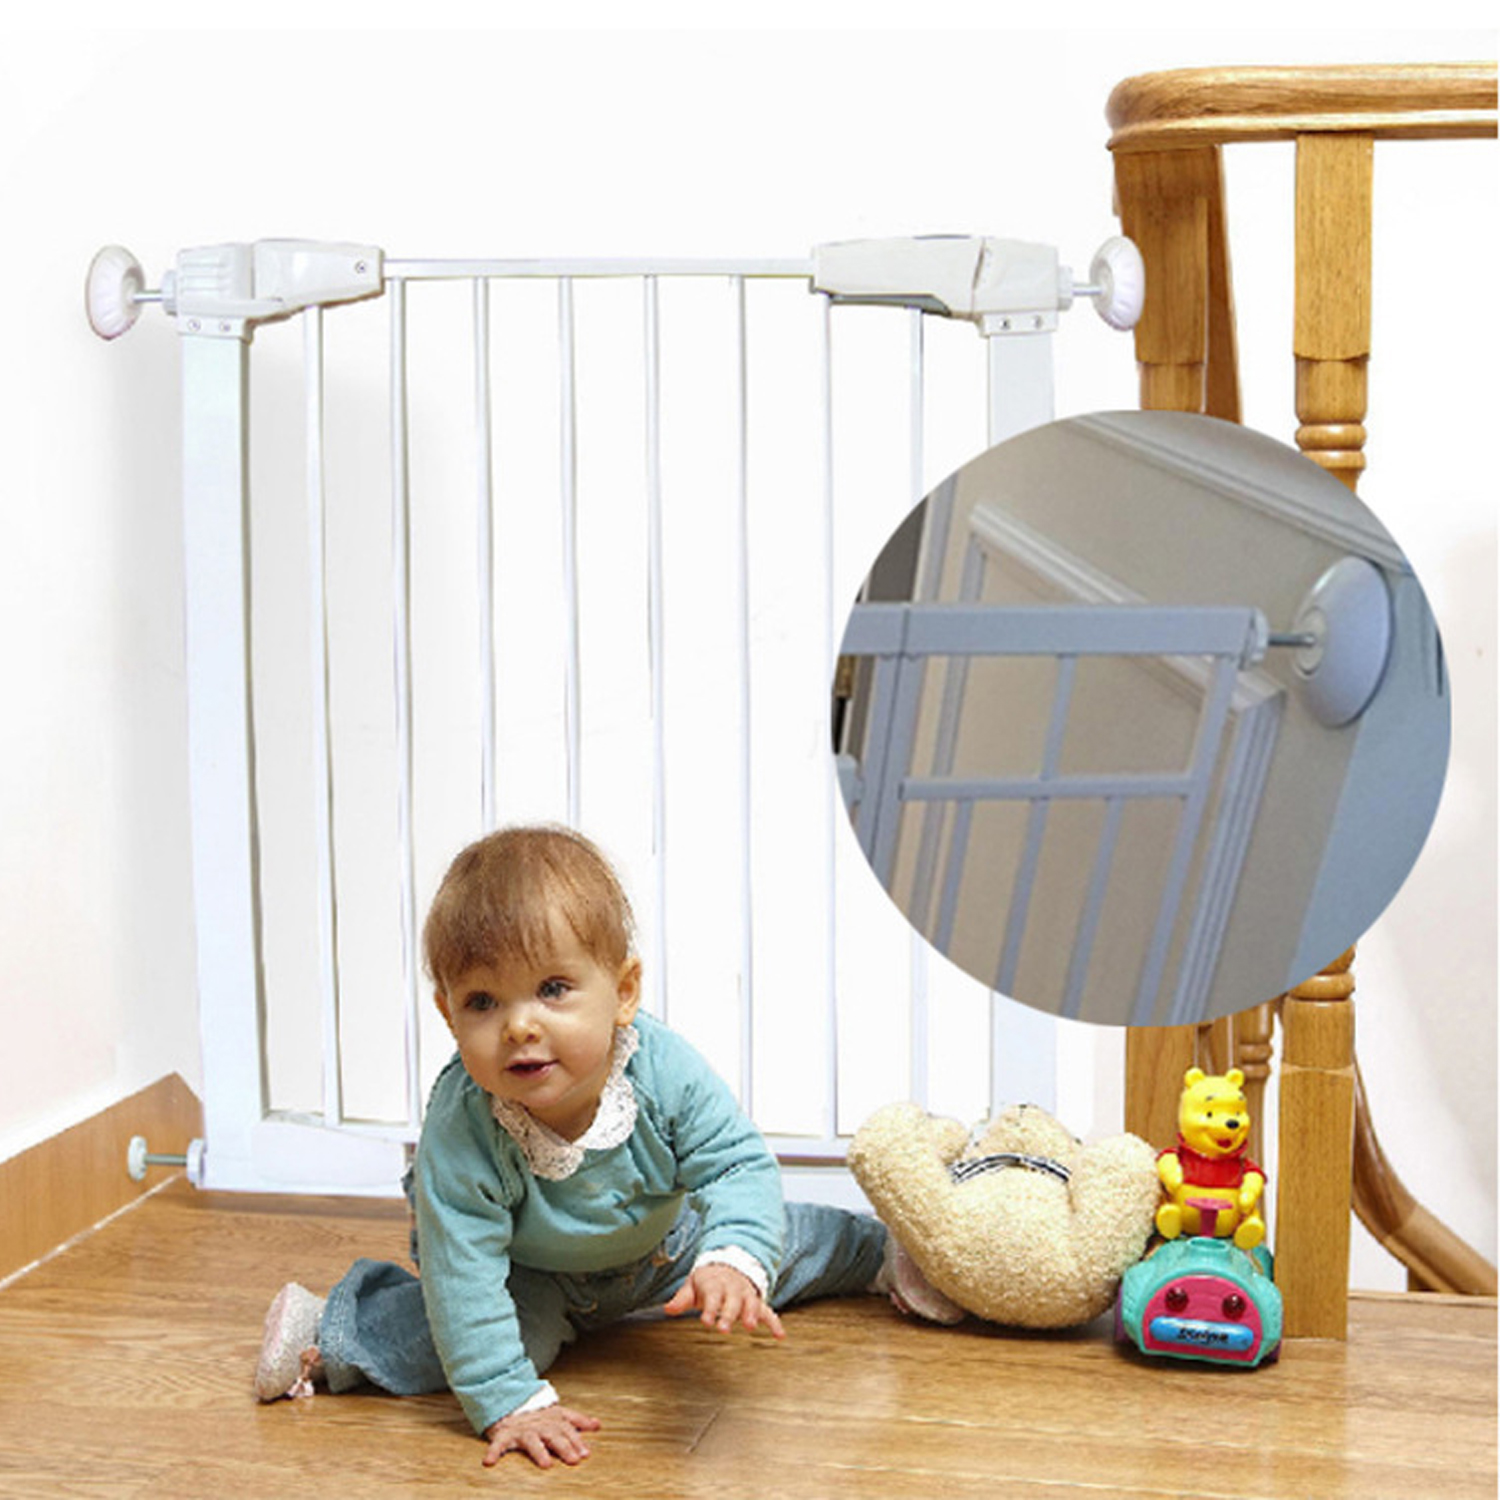 4 Packs Drill-Free Mounting Safety Gate Wall Bumper Cabine Guards Protector Baby Door Pet Door Stair Wall Cups Pad Indoor Safety